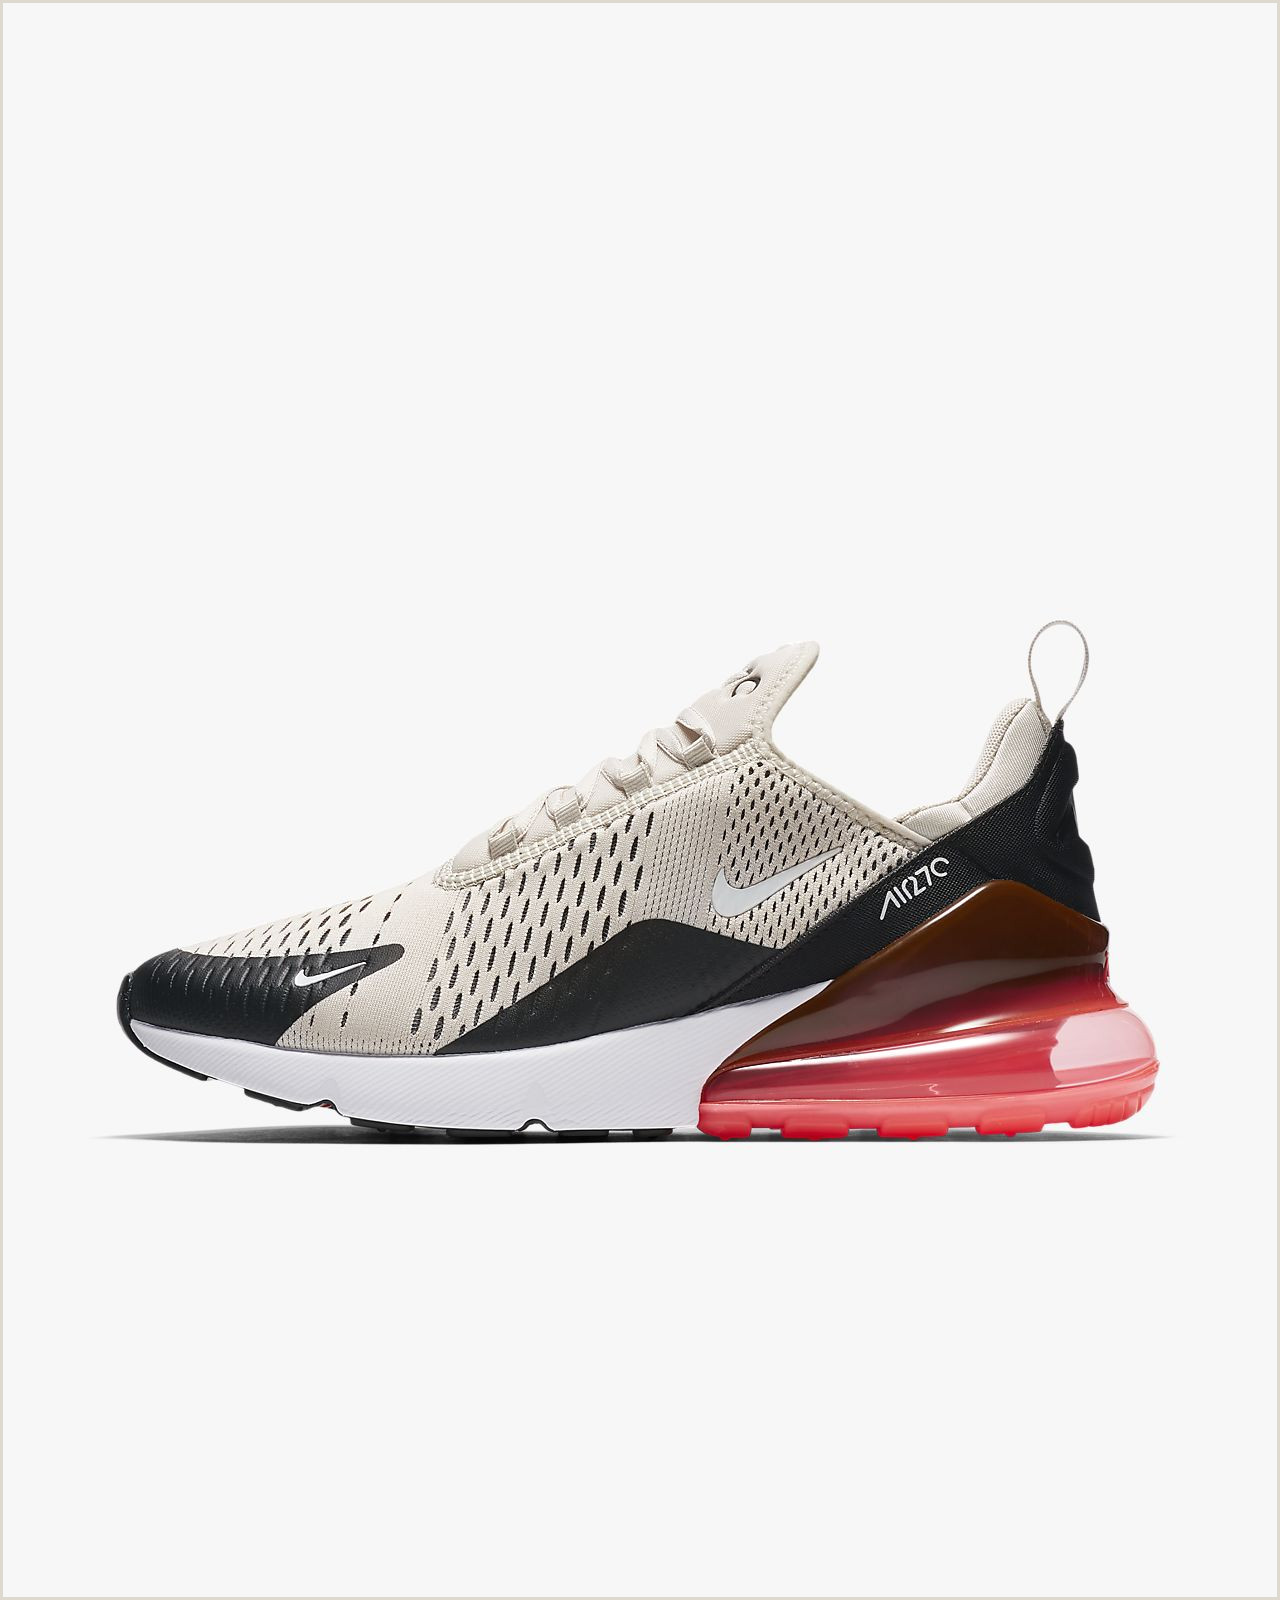 Fire Instructor Evaluation form Chaussure Nike Air Max 270 Pour Homme